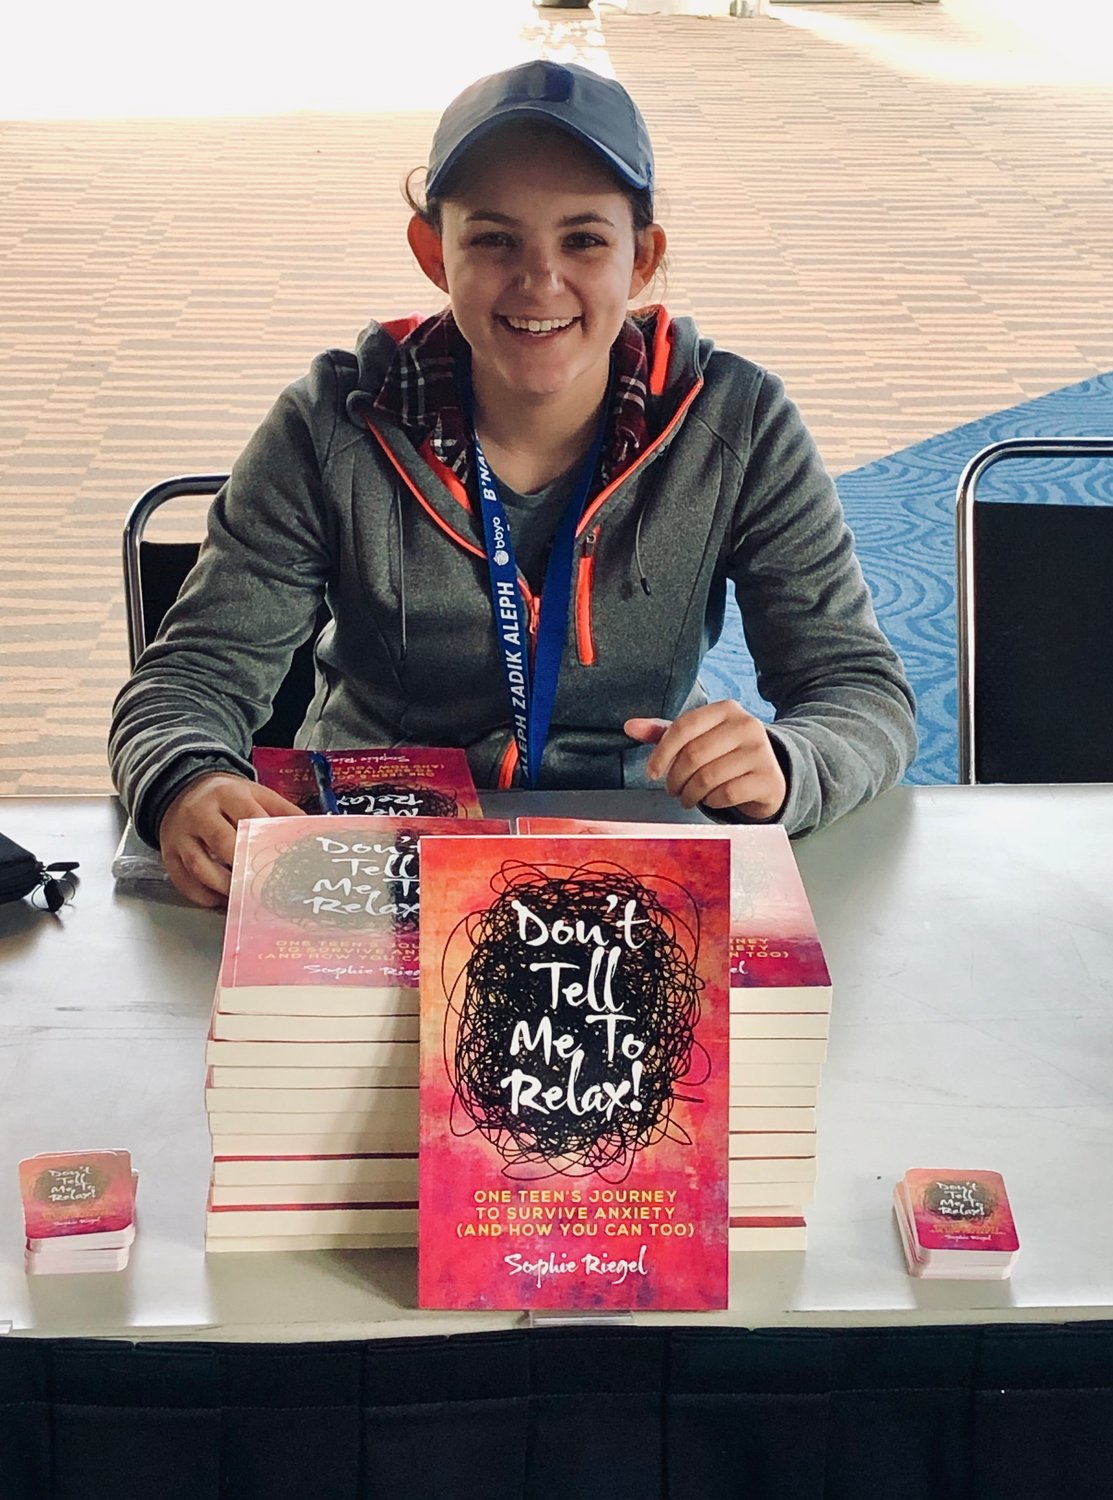 Hewlett High School senior Sophie Riegel signed copies of her book 'Don't Tell Me To Relax,' at the BBYO event in February.